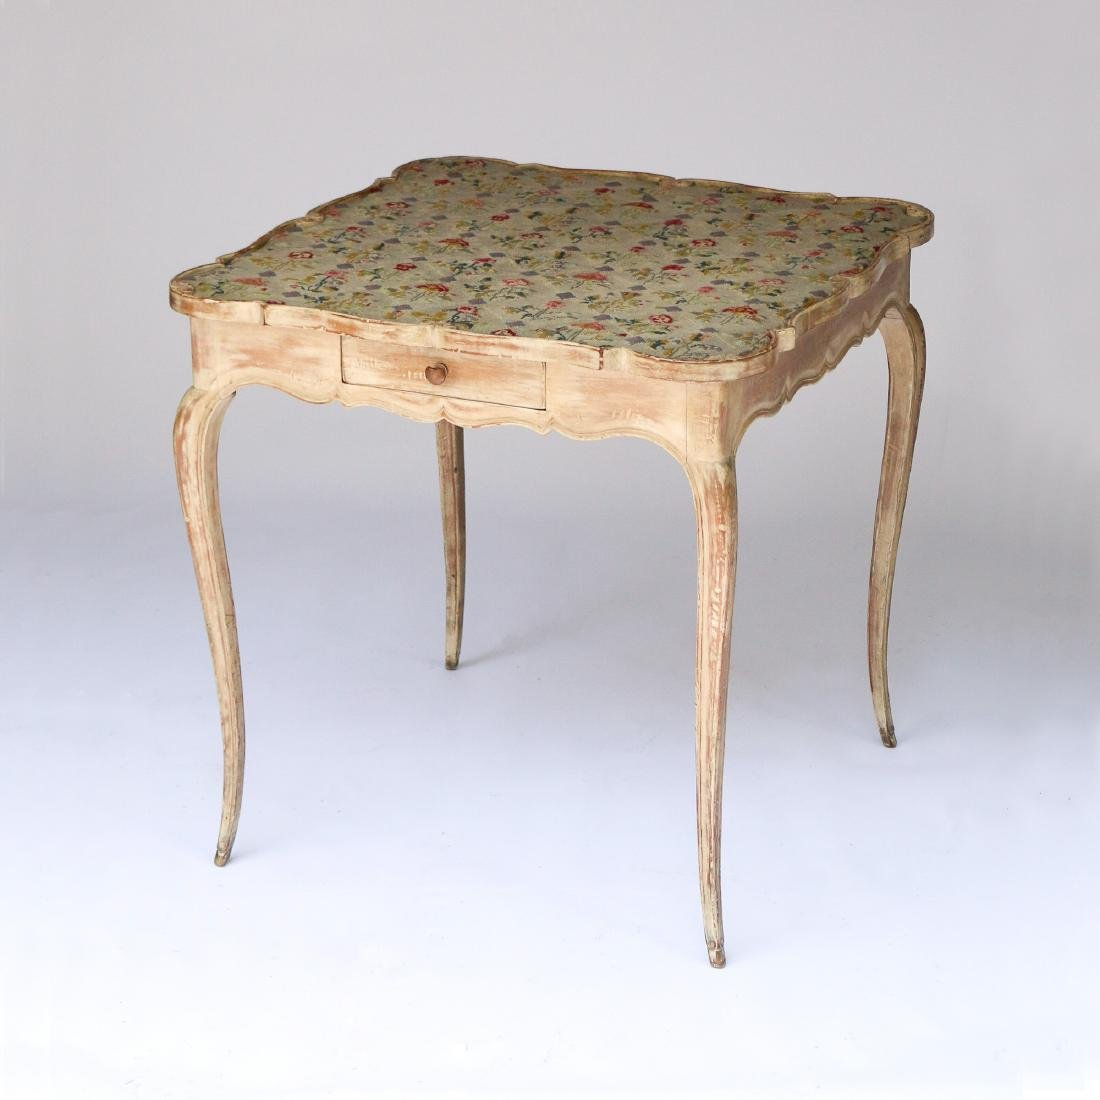 EMBROIDERED TOP CARD TABLE